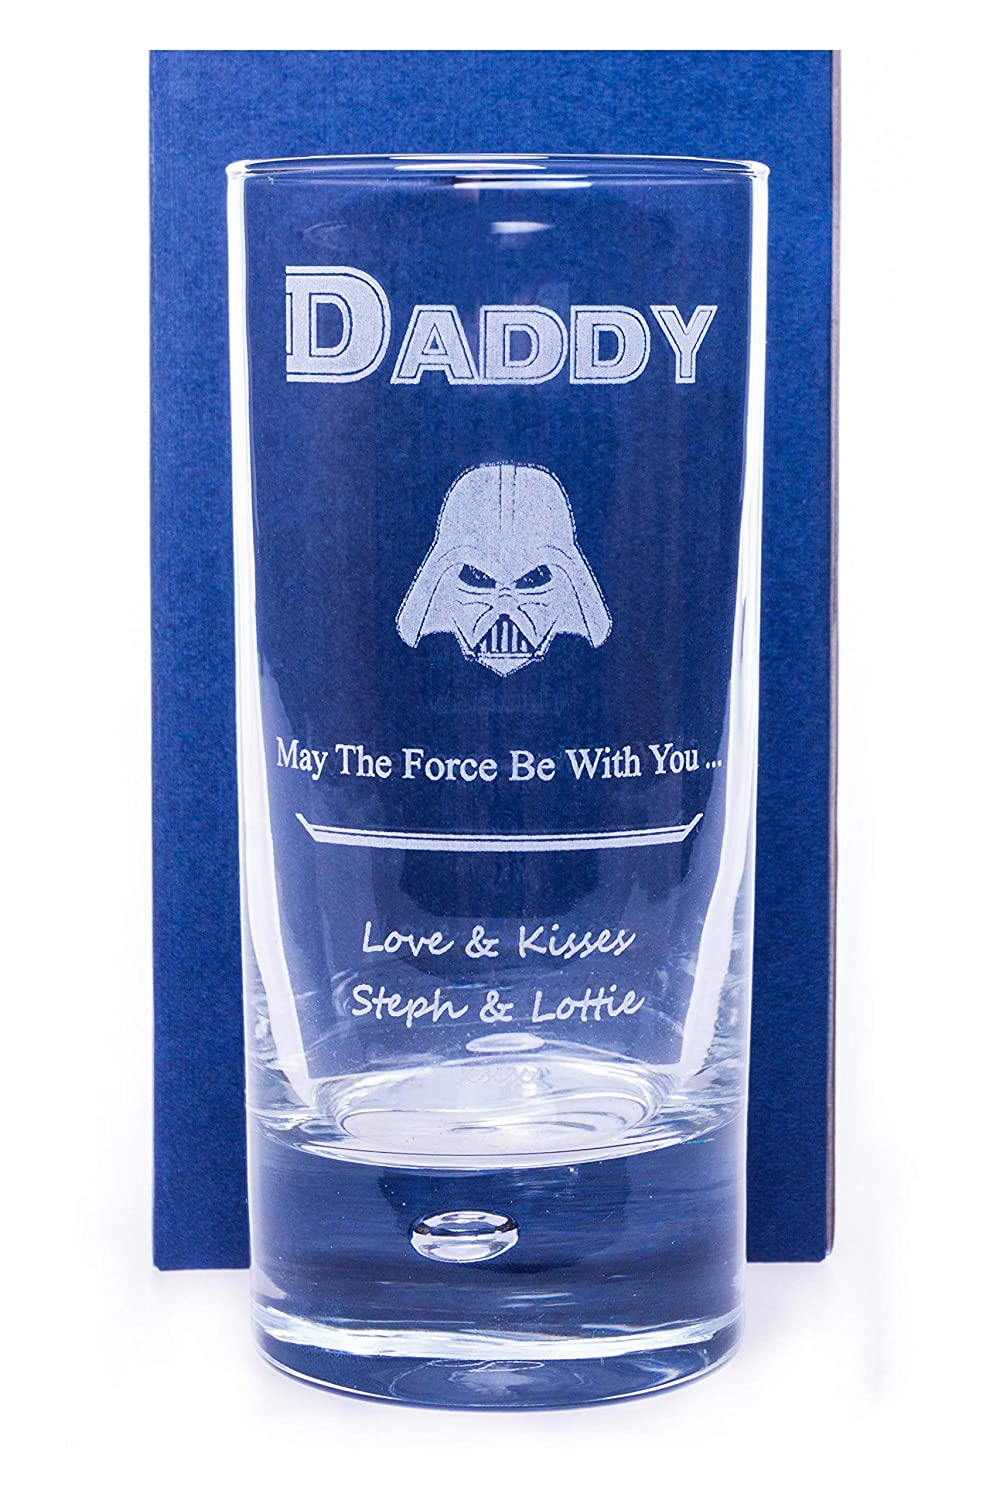 Engraved/Personalised STAR WARS DARTH VADER HighBall Glass Gift For Fathers Day/Birthday/Christmas/Dad/Daddy/Step Dad/Husband/Son/Boys/Men/Grandad/Grandson/Nephew/Best Man/Usher/Page Boy/Wedding/Uncle/Boyfriend Cr8 A Gift